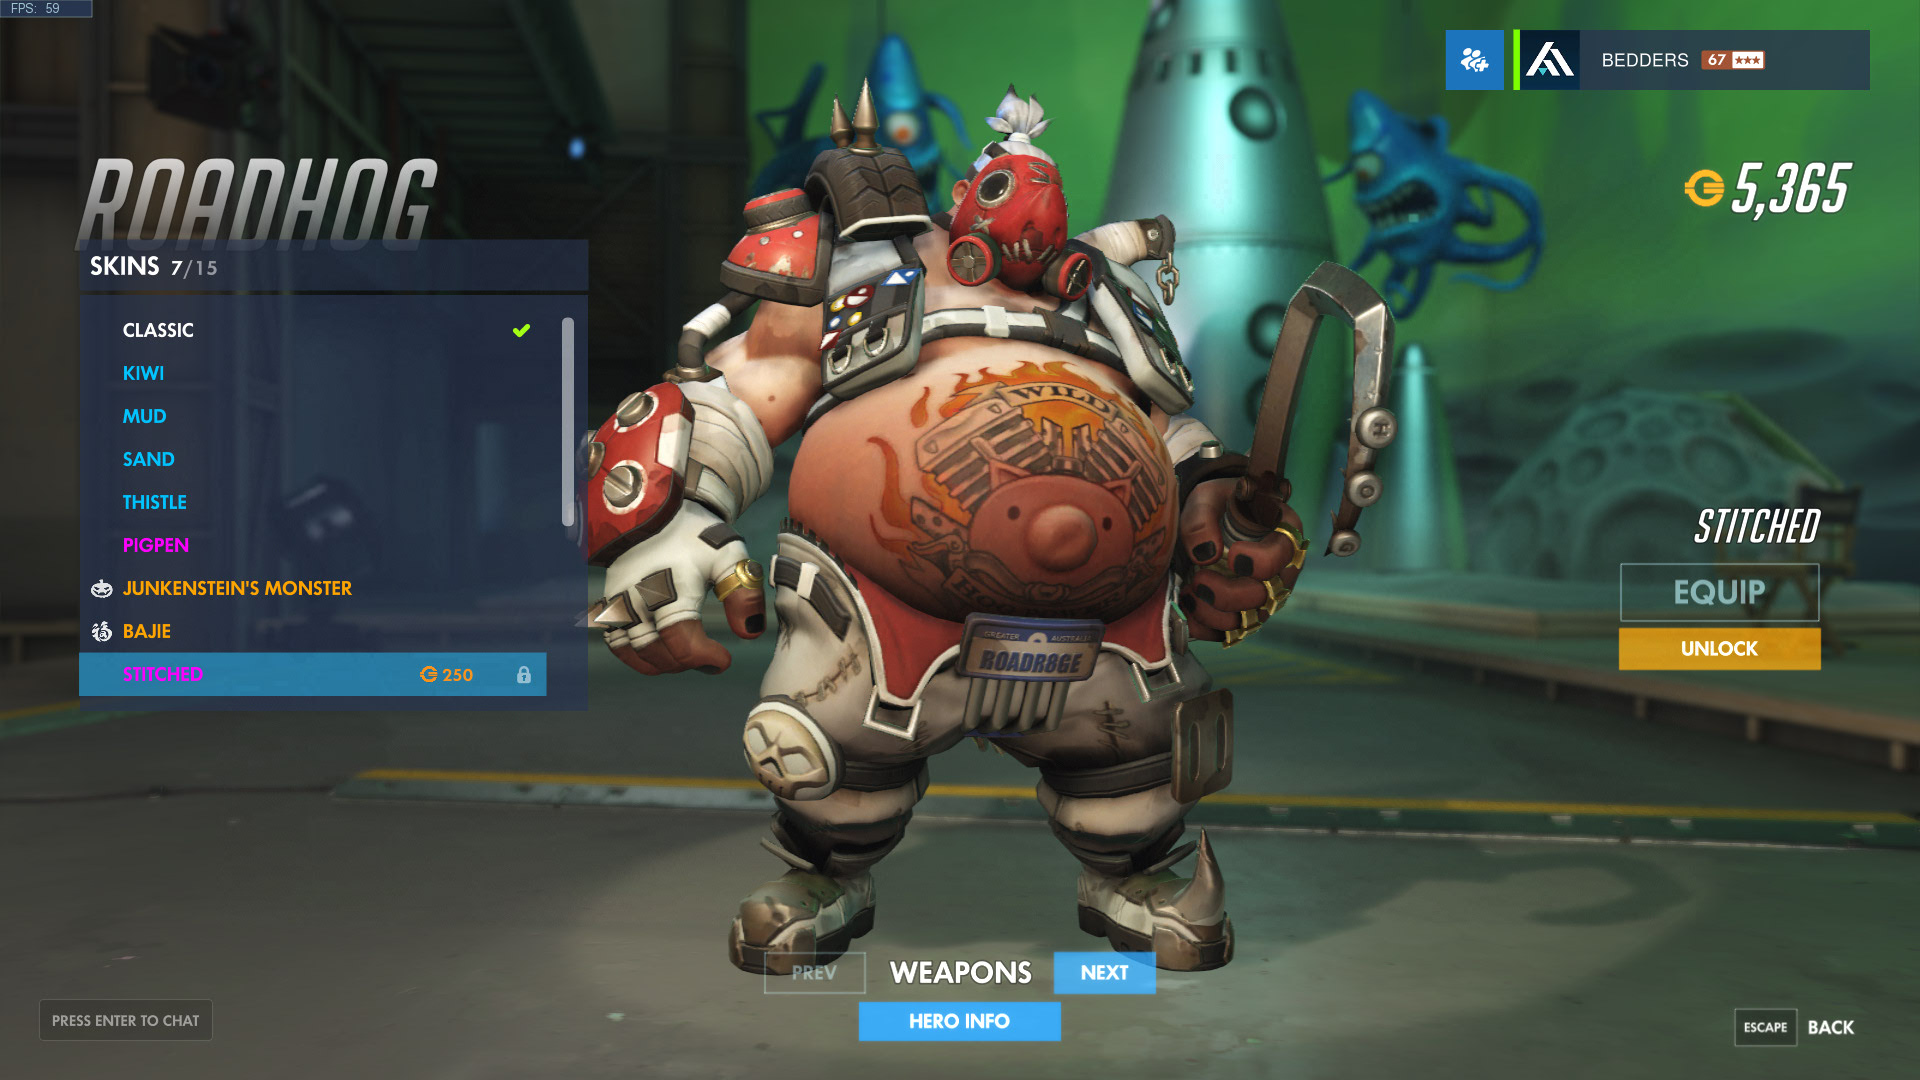 Overwatch Roadhog Guide Tips Tricks And Strategy